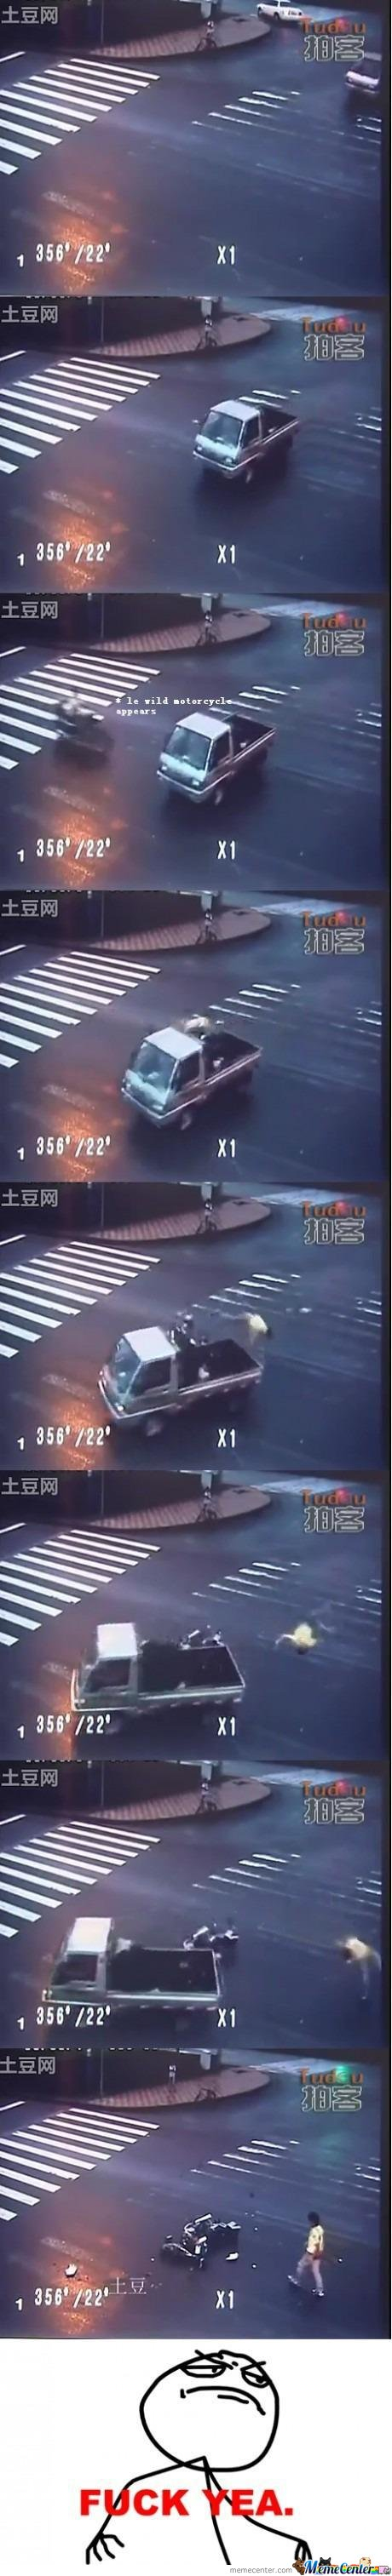 Surviving Accident Level : Asians!